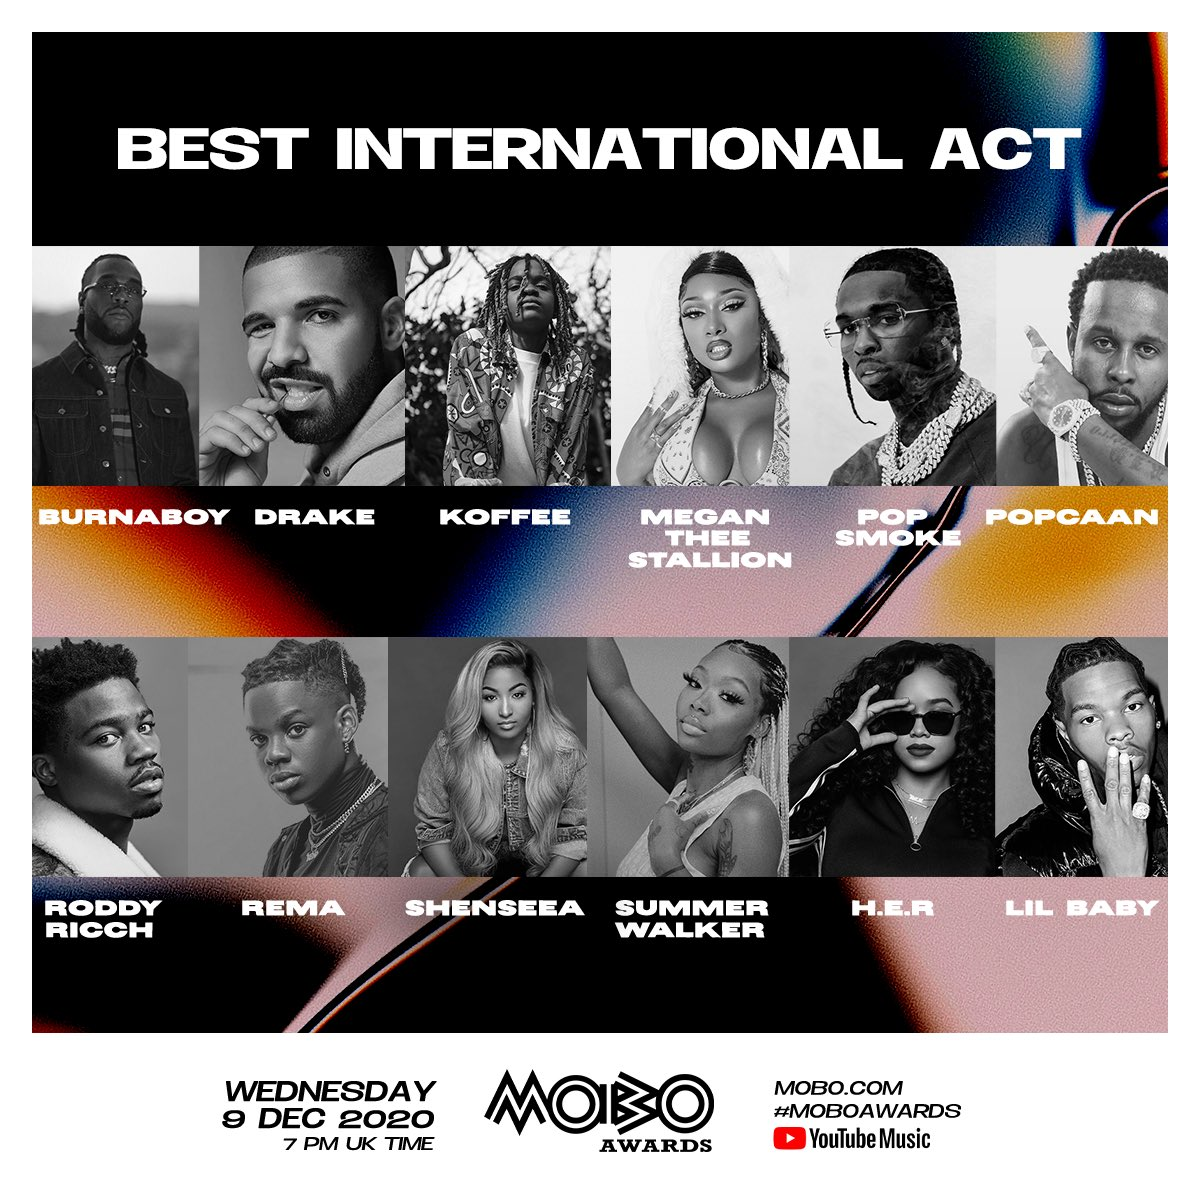 The 2020 #MOBOAwards Best International Act nominees have arrived! 🙌🏾   Congrats to @burnaboy @Drake @originalkoffee @theestallion @POPSMOKE10 @PopcaanMusic @RoddyRicch @heisrema @SHENYENG @IAMSUMMERWALKER @HERMusicx @lilbaby4PF 👏🏾👏🏾